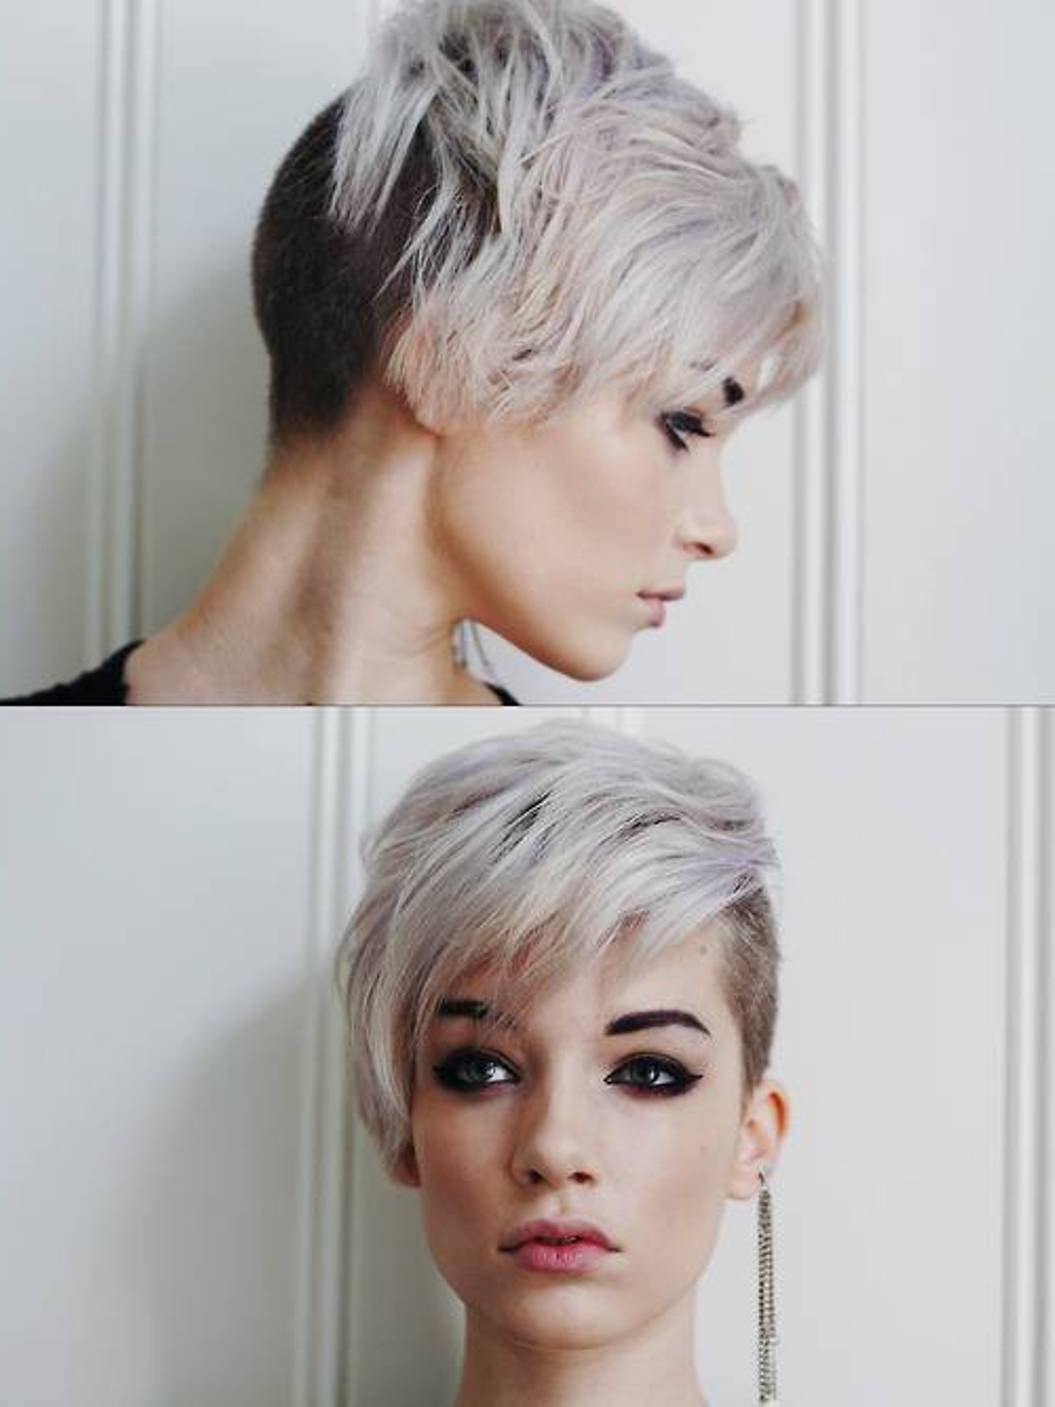 20 Shaved Hairstyles For Women